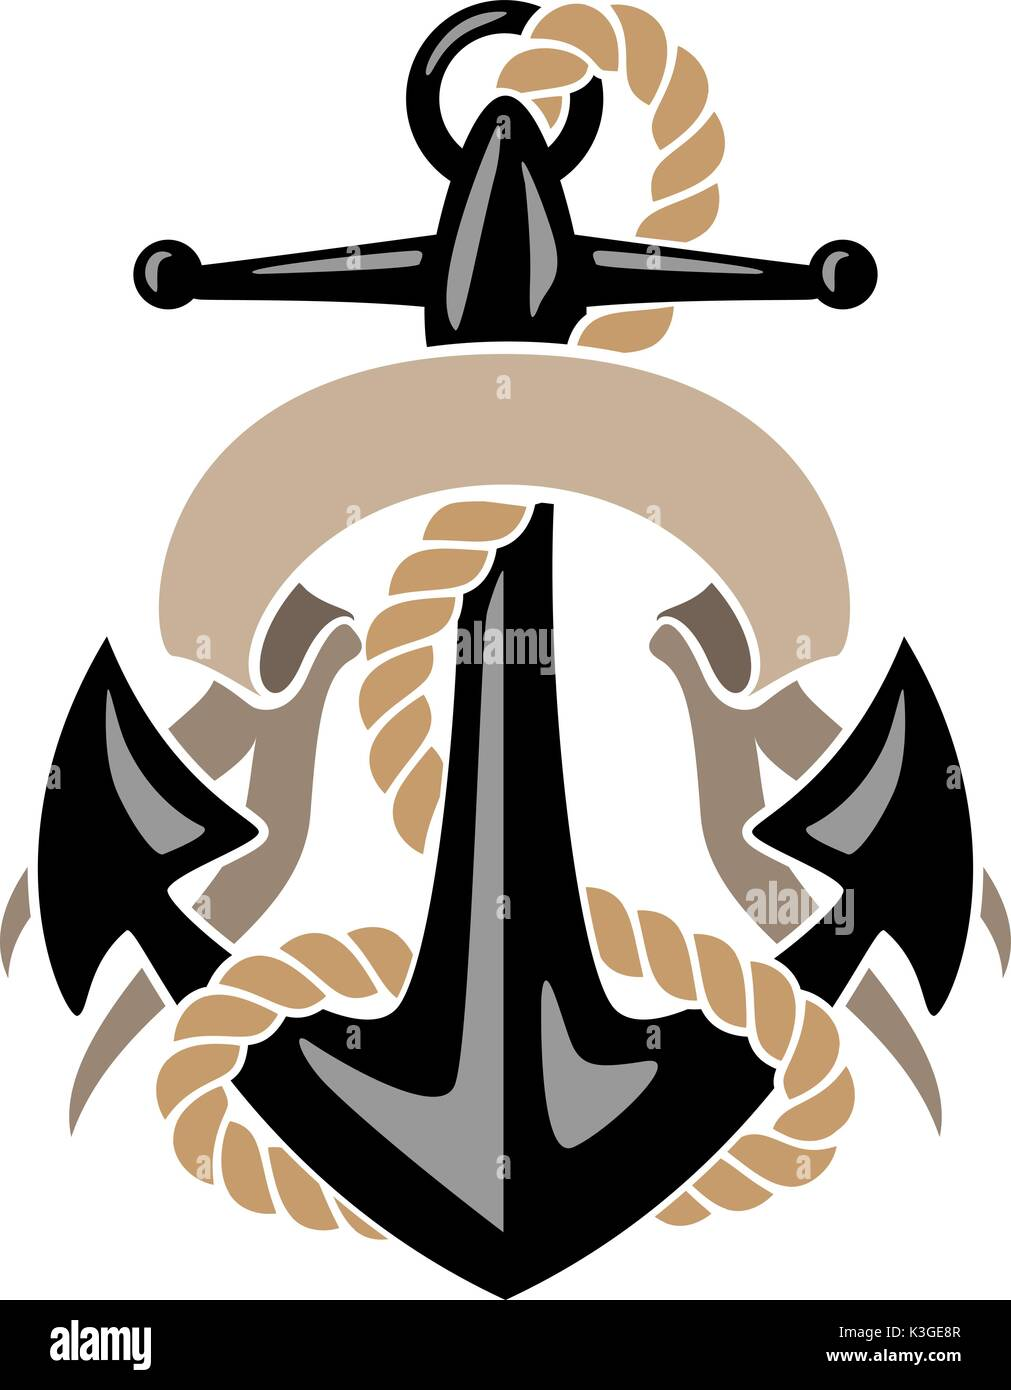 Anchor with Rope and Banner - Stock Image